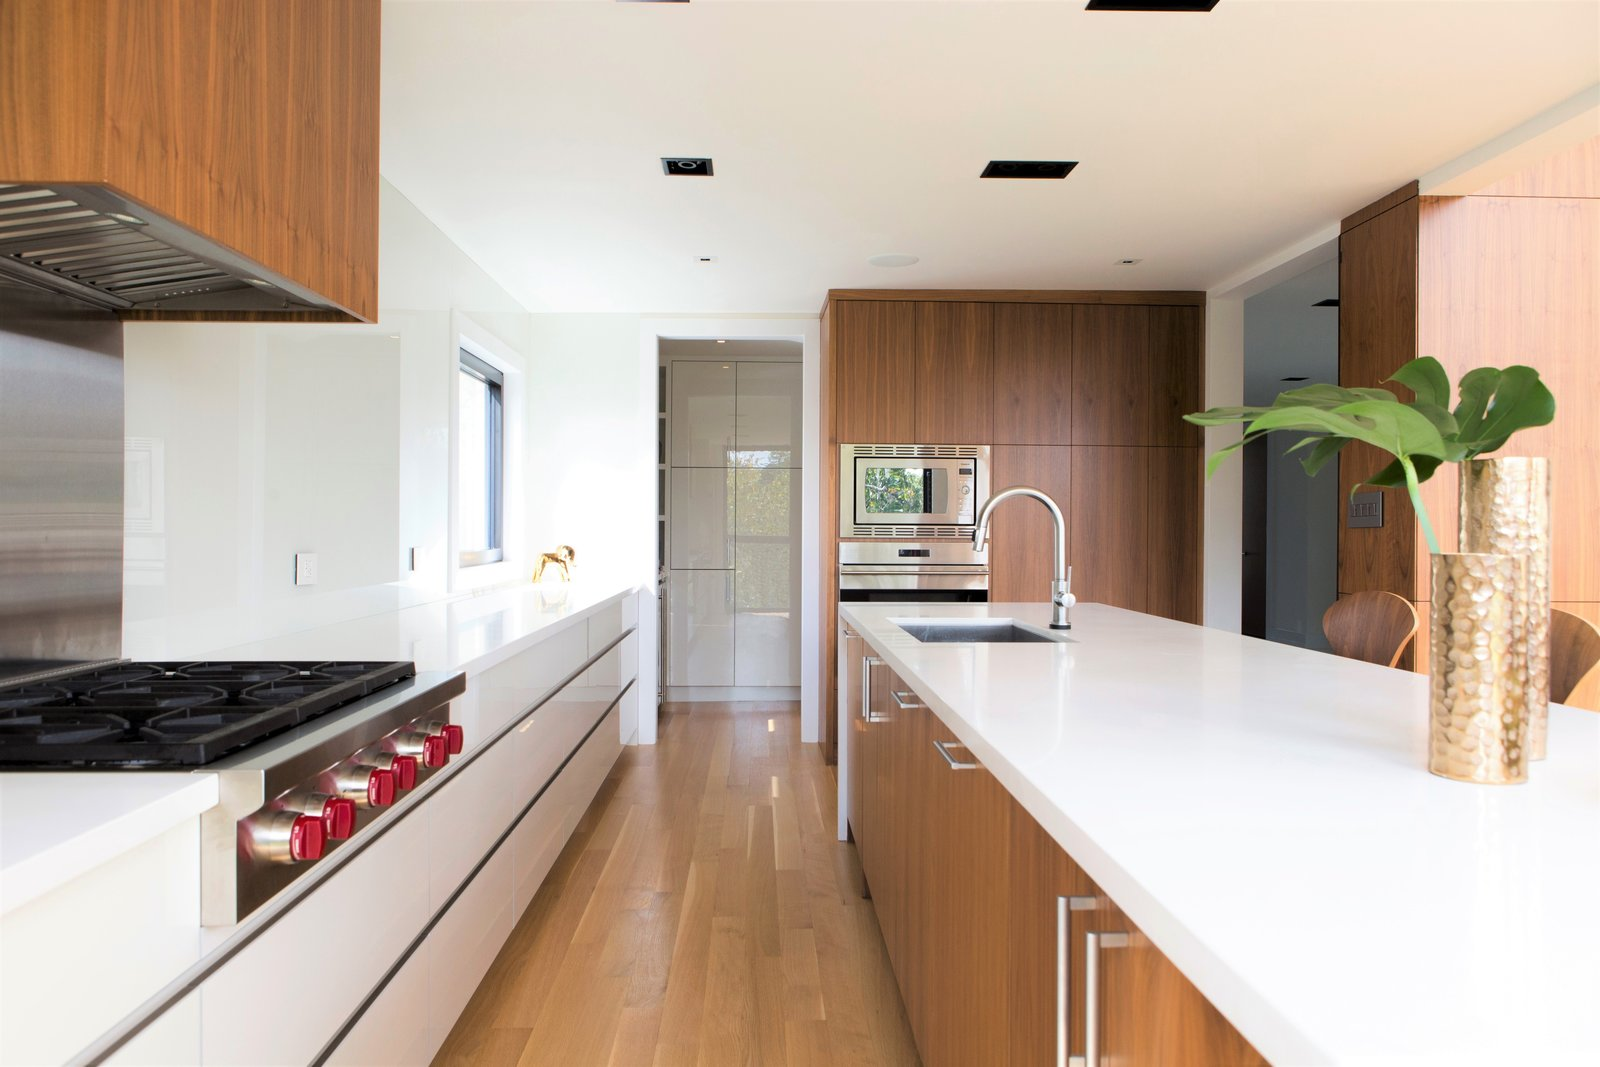 The design of the kitchen is unique in that is has no upper cabinets, and features drawers all throughout the bottom cabinetry – a feature not typically found in residential kitchen designs.